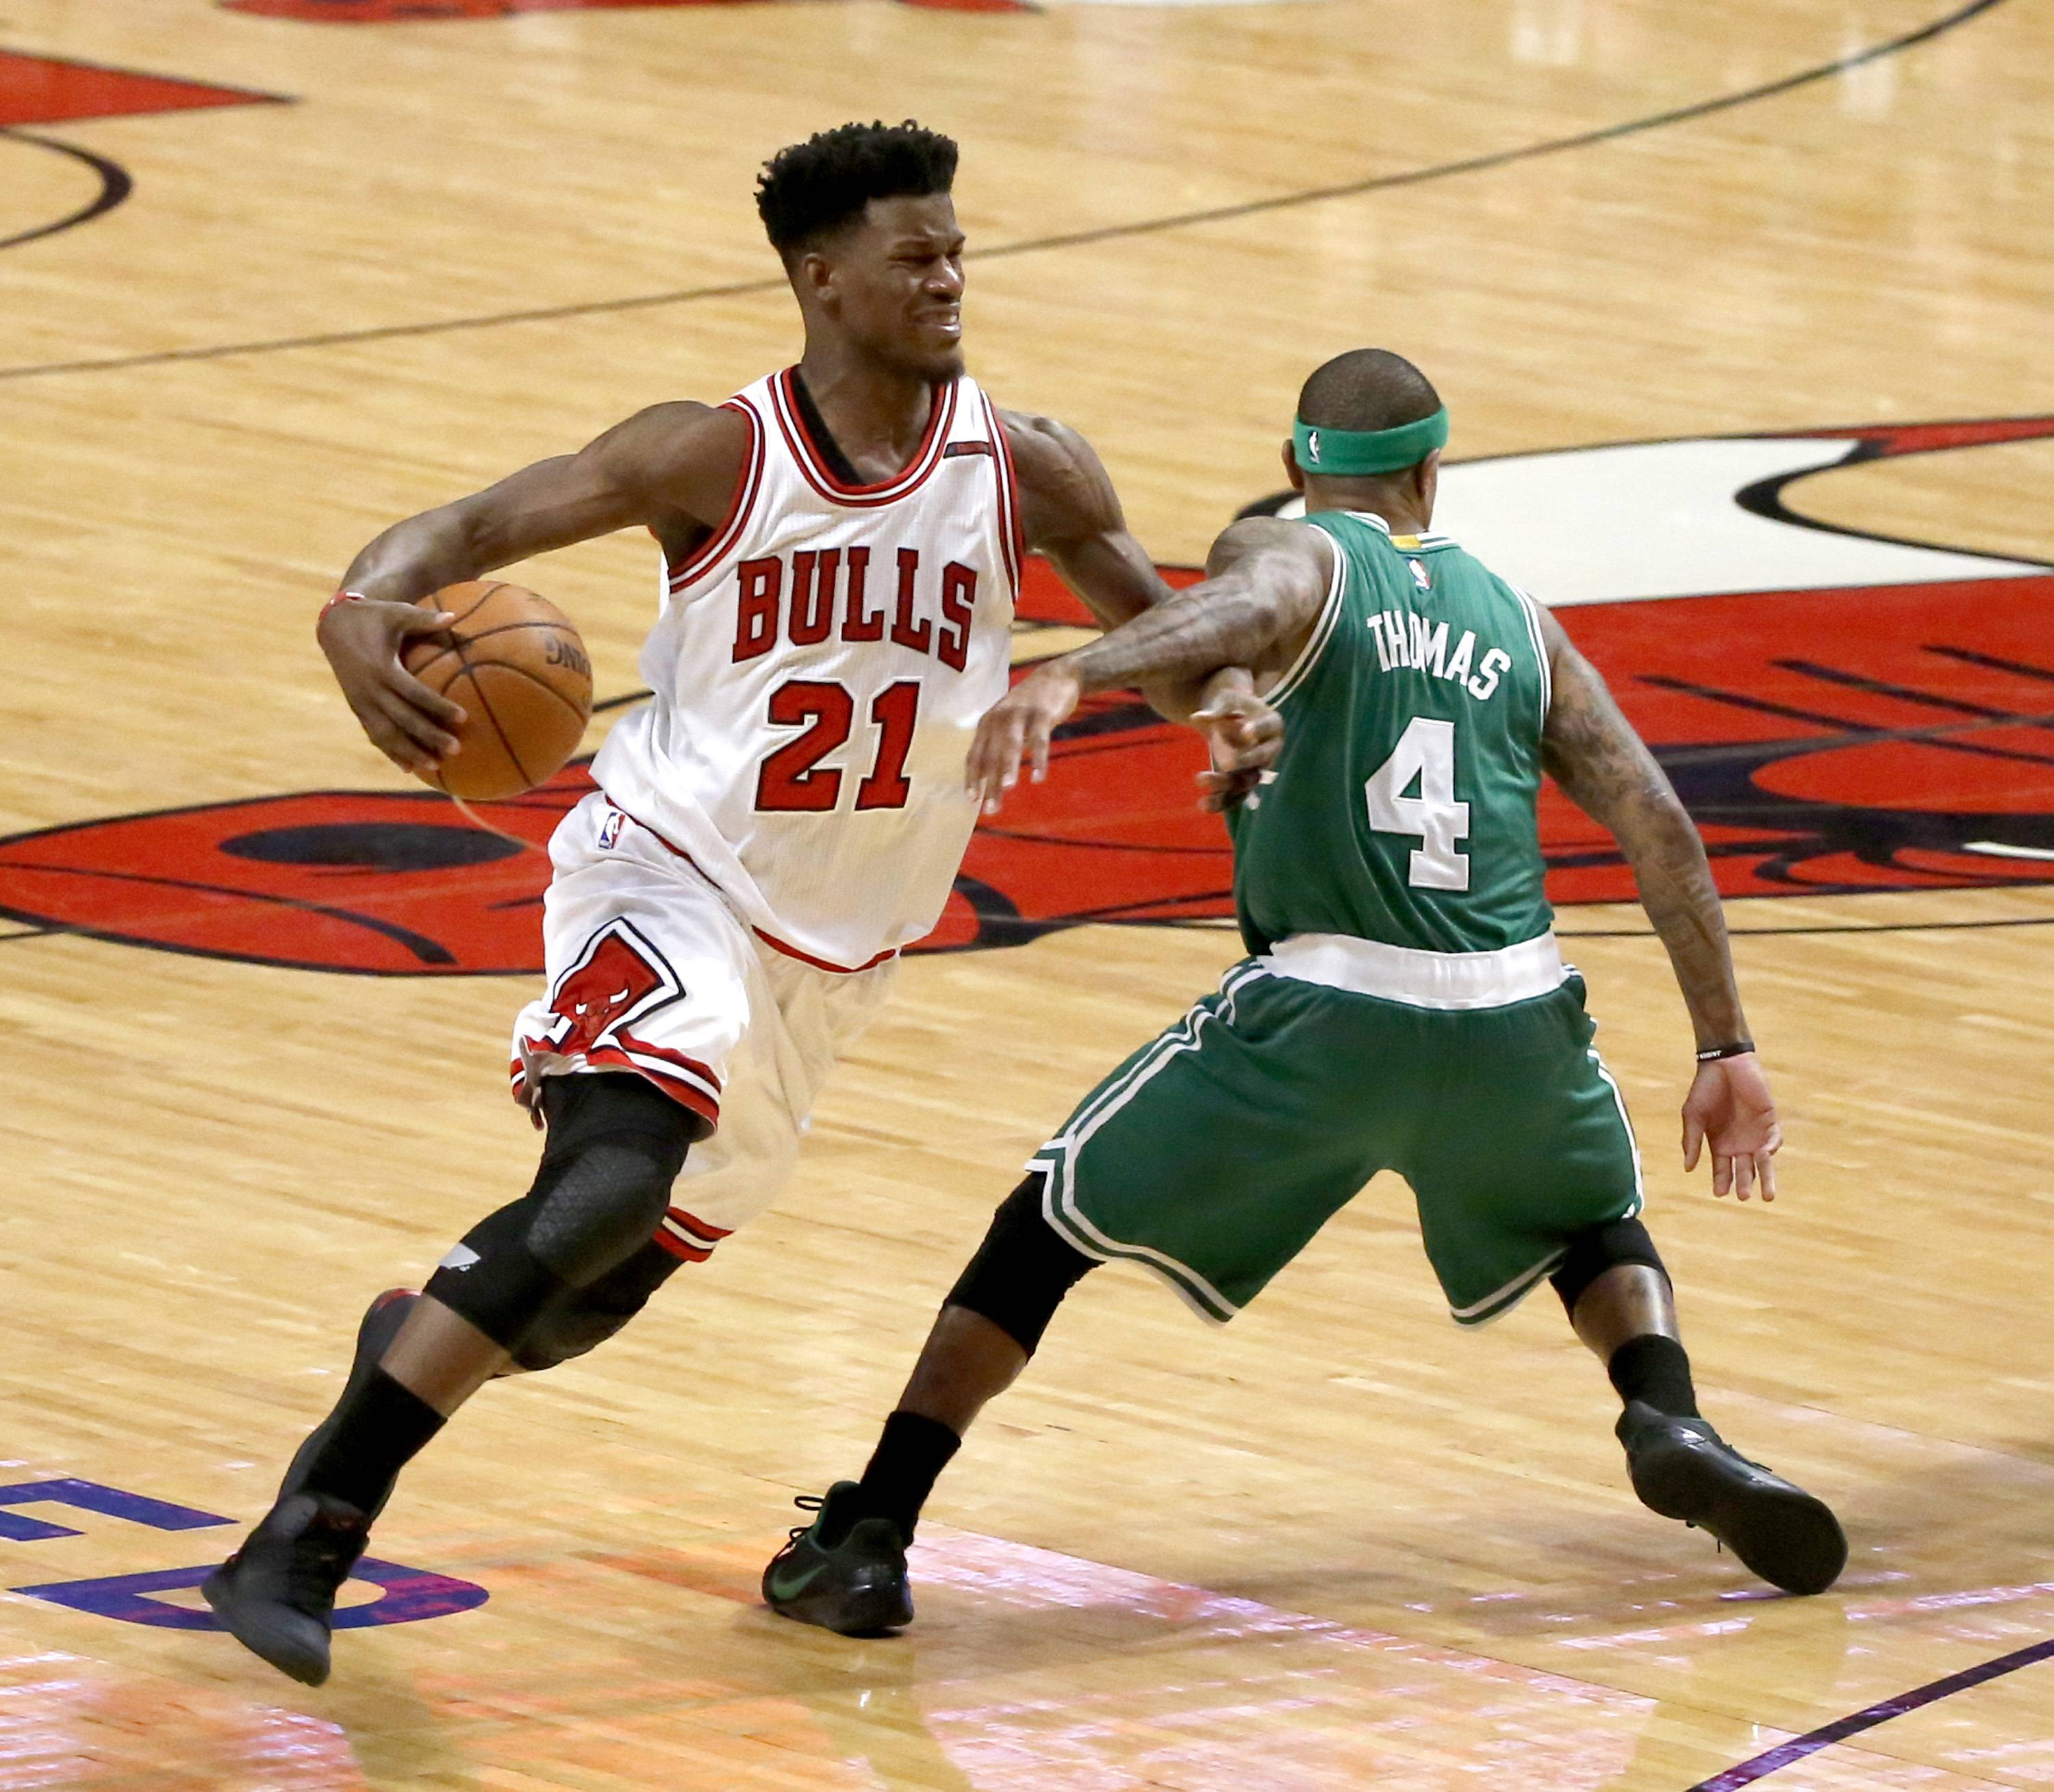 Chicago Bulls' Jimmy Butler (21) is fouled by Boston Celtics' Isaiah Thomas during the second half in Game 4 of an NBA basketball first-round playoff series in Chicago, Sunday, April 23, 2017. The Celtics won 104-95.